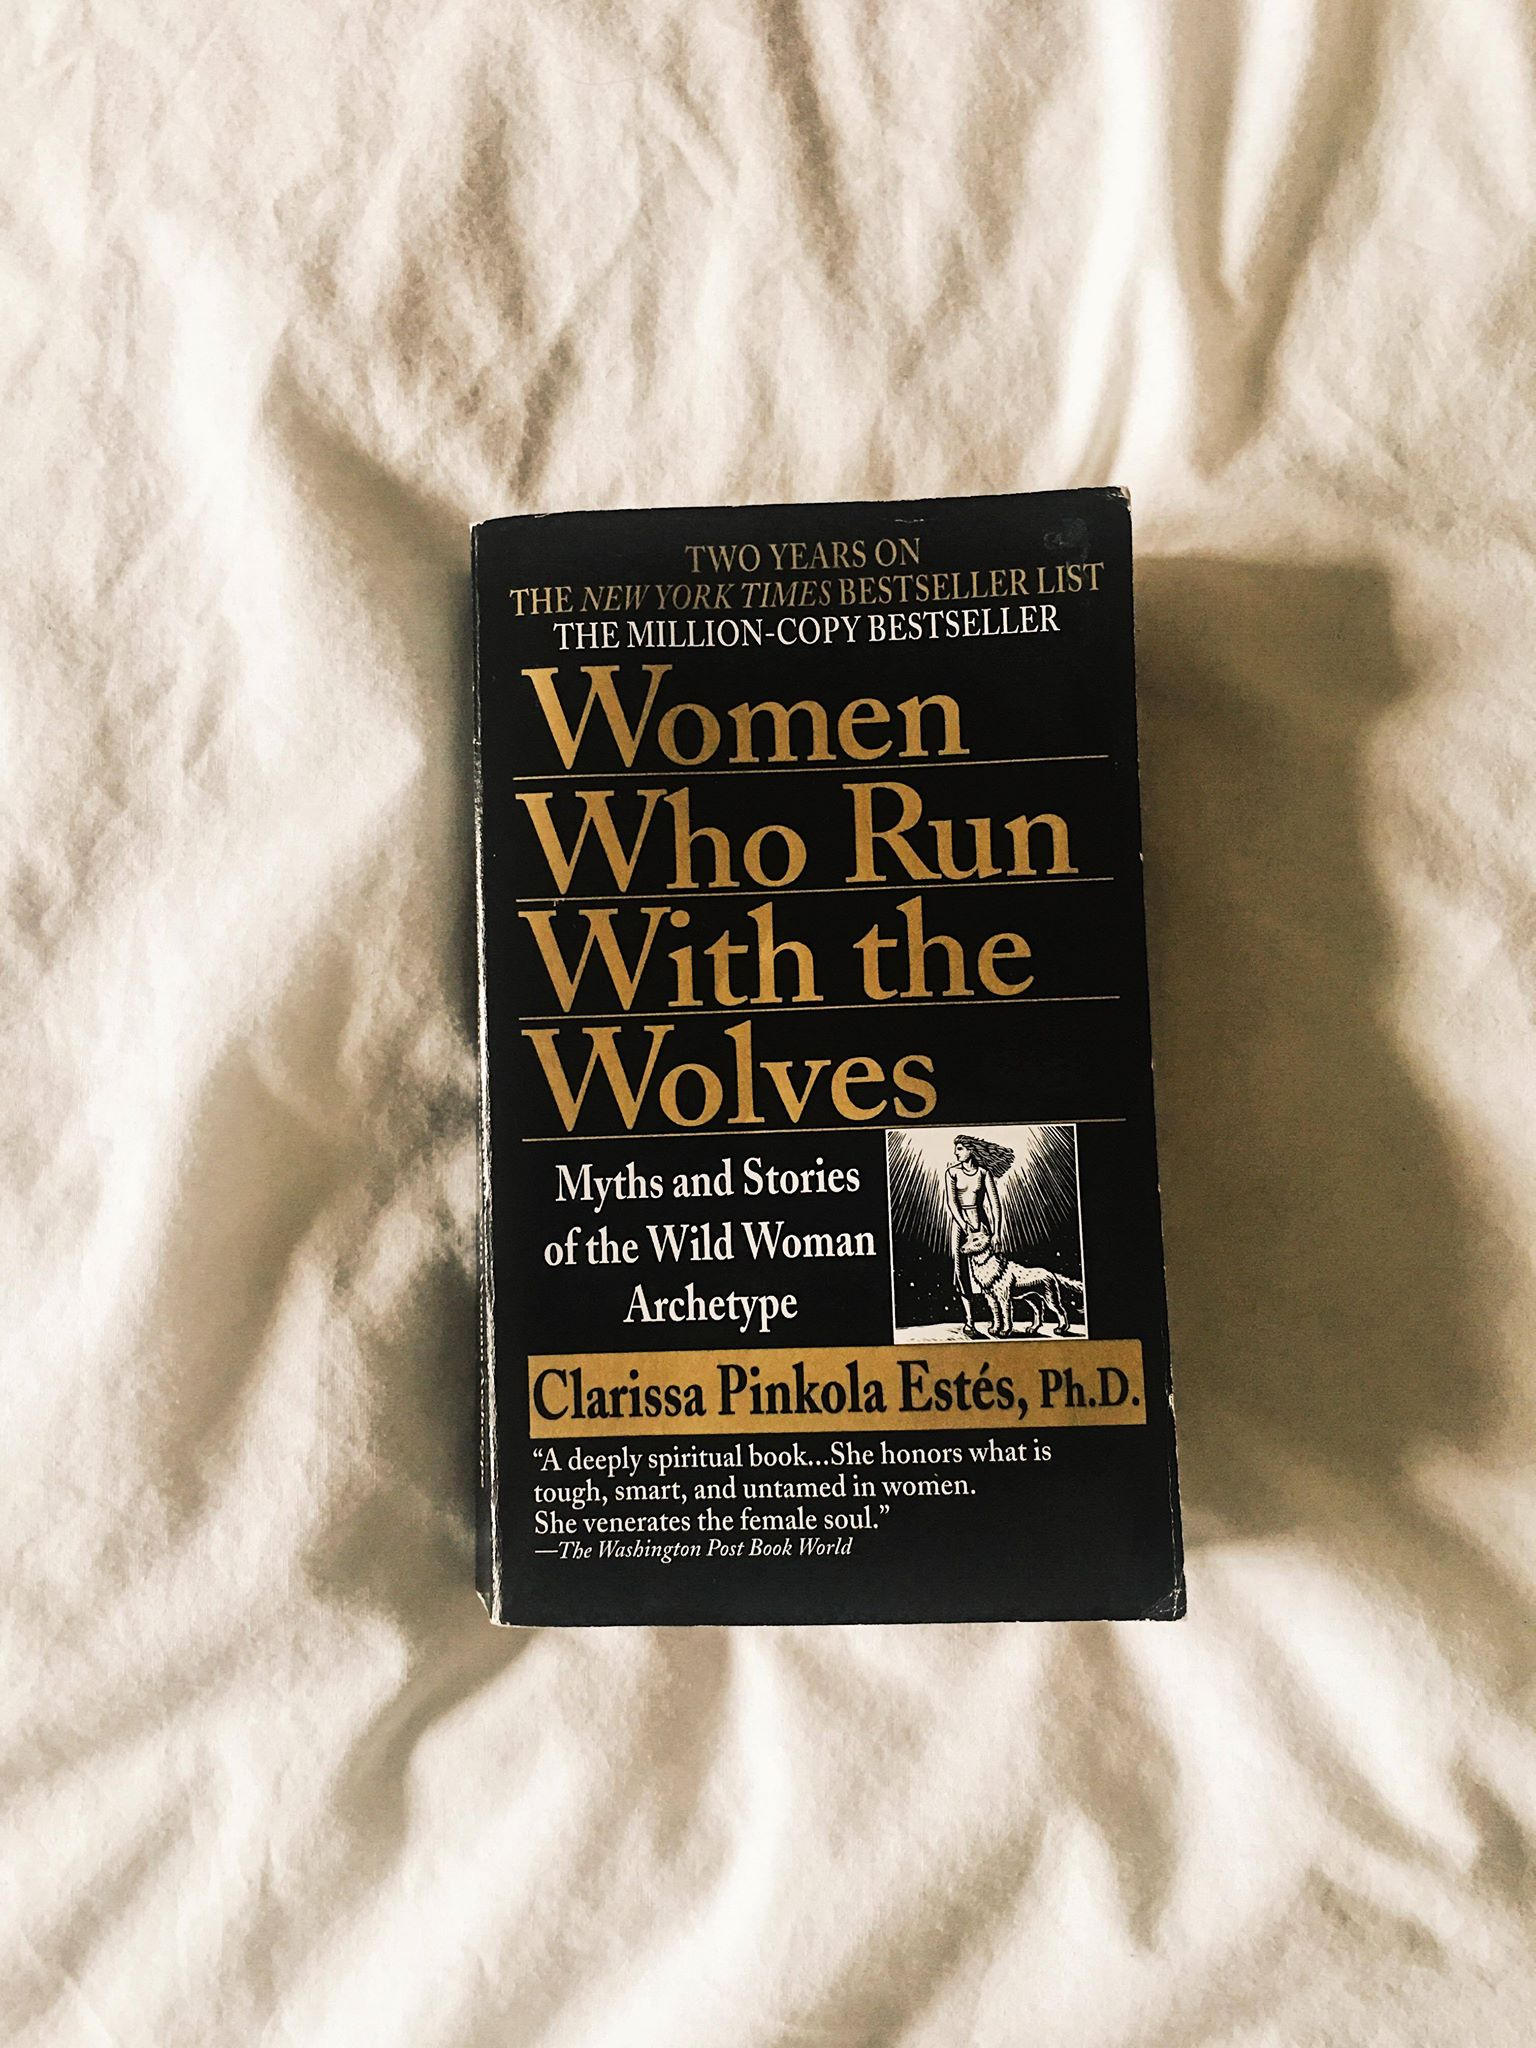 [Review] Women who Run With the Wolves by Clarissa Pinkola Estés Ph.D